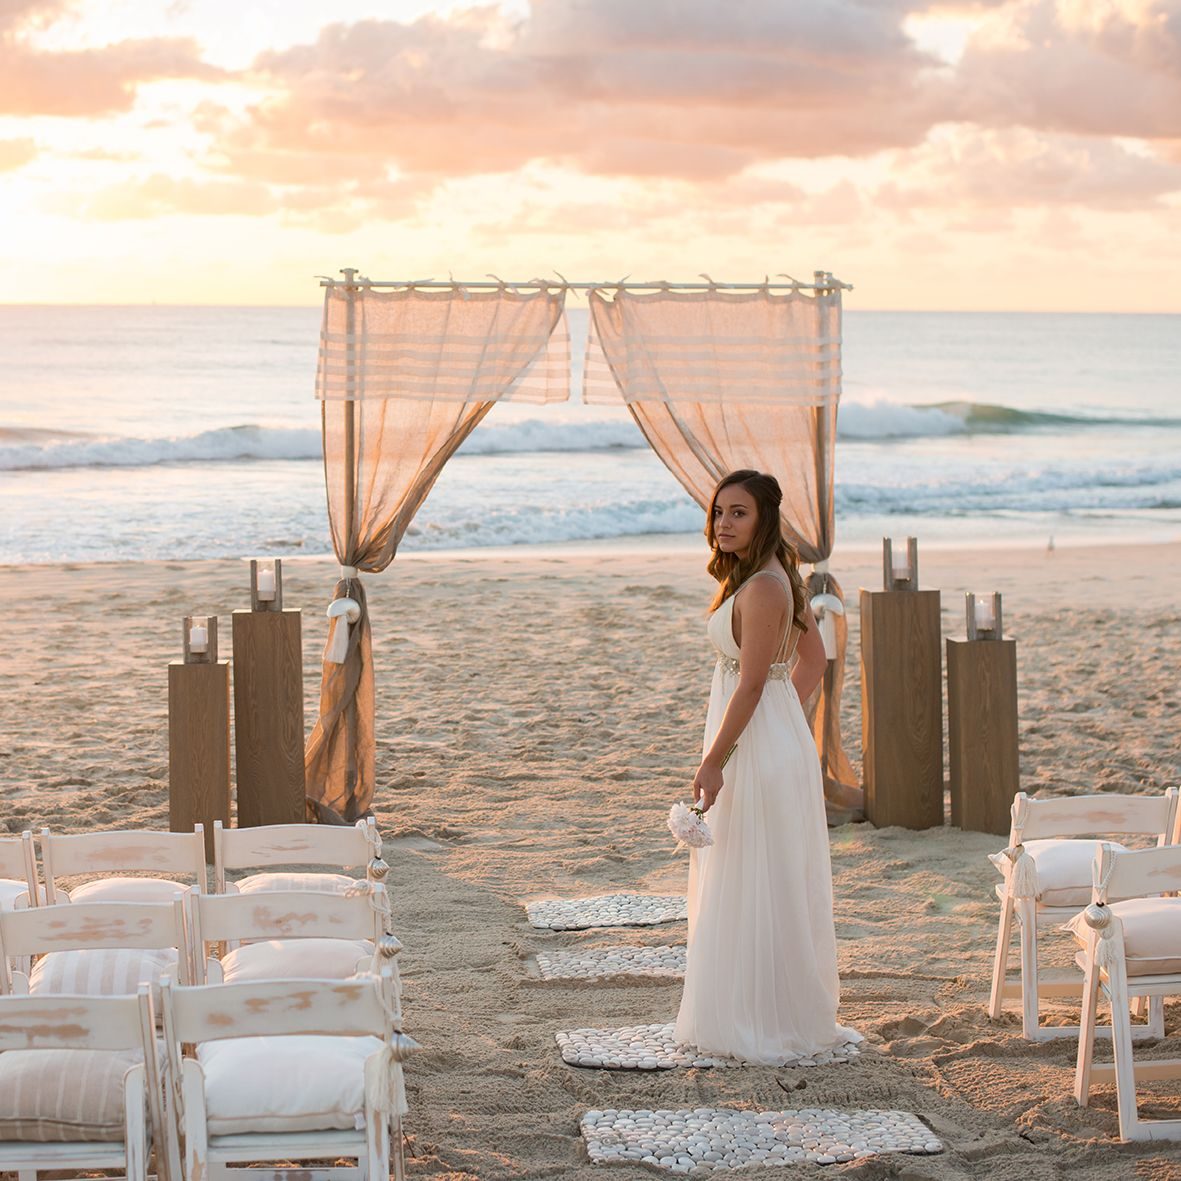 Our Dreamy Beach Bride At Dawn Styling Beautiful Weddings Events Venue Currumbin Beach Photography Beautiful Weddings Beach Bride Wedding Reception Rooms